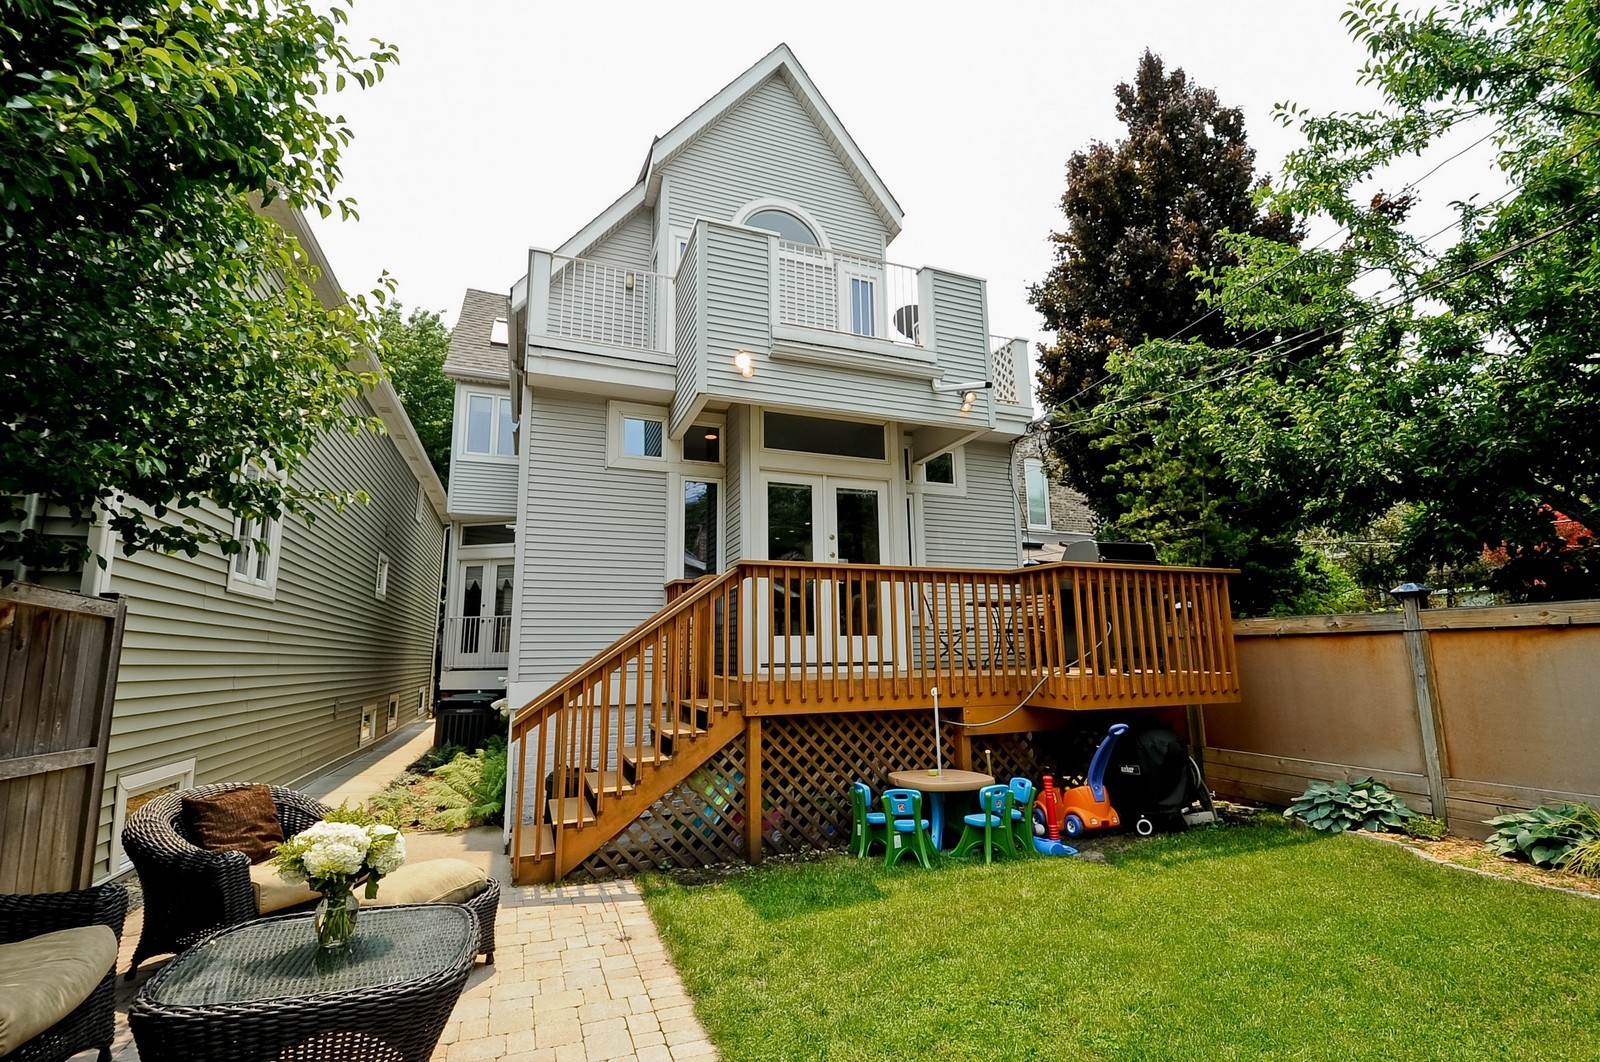 Real Estate Photography - 1144 W. Altgeld, Chicago, IL, 60614 - Rear View